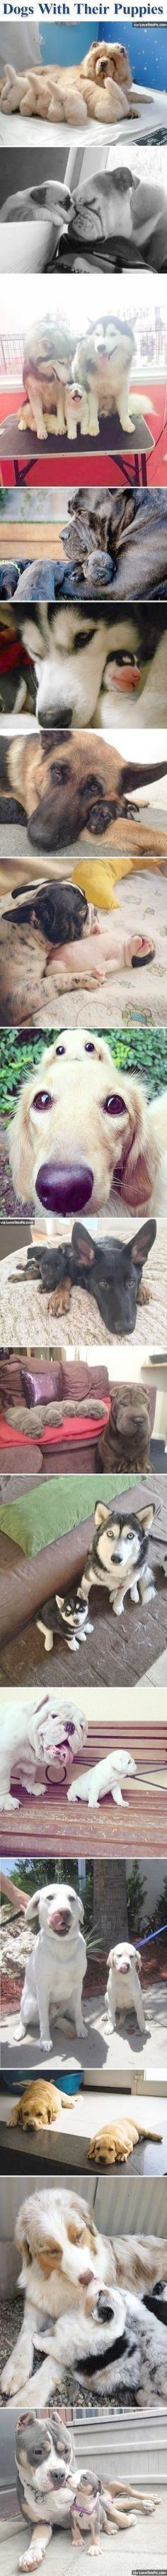 best Dogs images on Pinterest Cute dogs Cute puppies and Fluffy